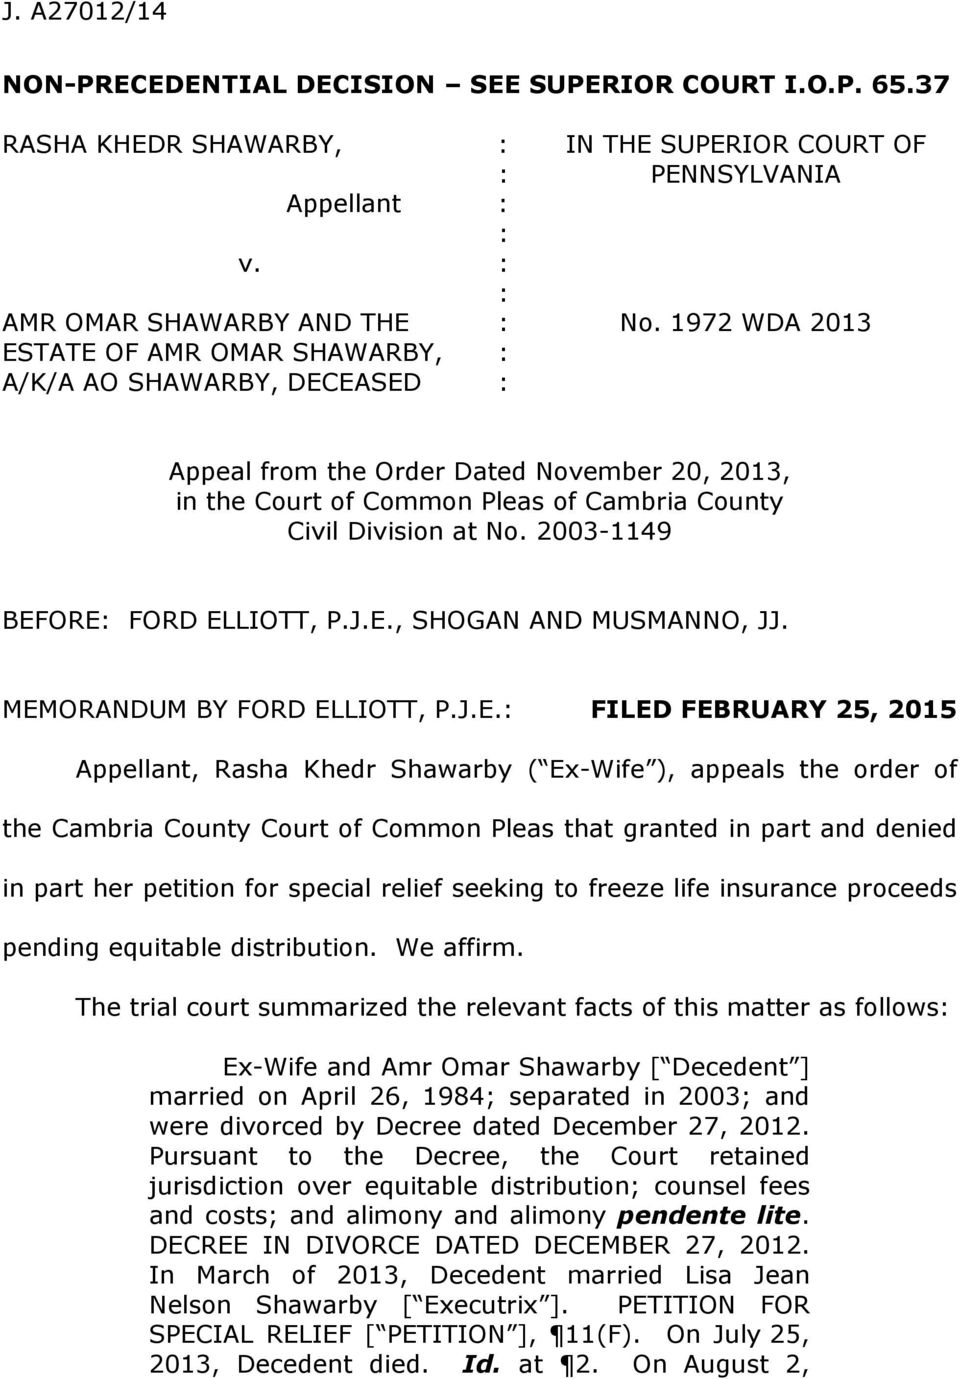 1972 WDA 2013 Appeal from the Order Dated November 20, 2013, in the Court of Common Pleas of Cambria County Civil Division at No. 2003-1149 BEFORE: FORD ELLIOTT, P.J.E., SHOGAN AND MUSMANNO, JJ.